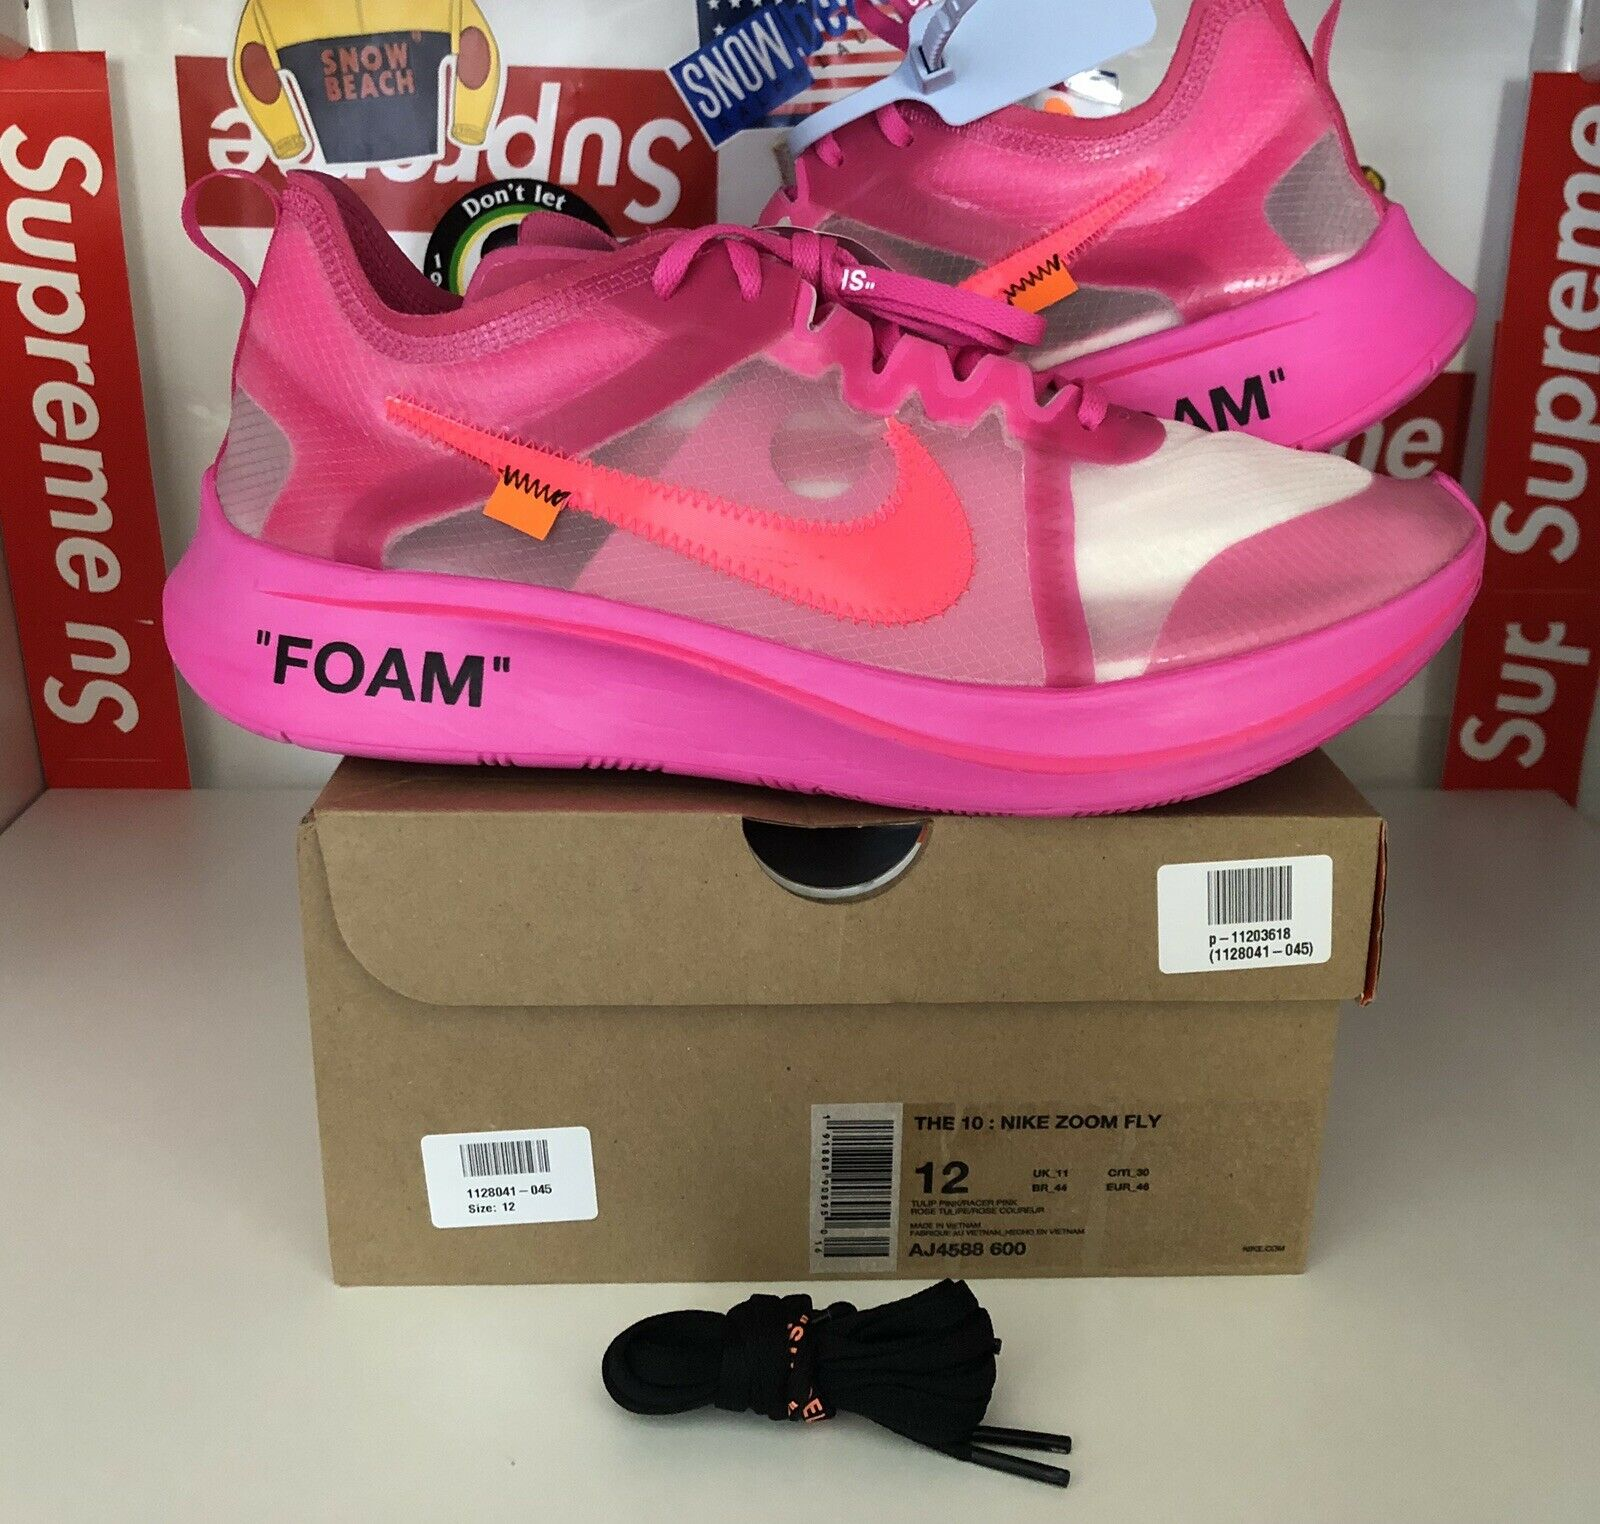 Nike X Off White Zoom Fly Tulip-Pink Size US 12